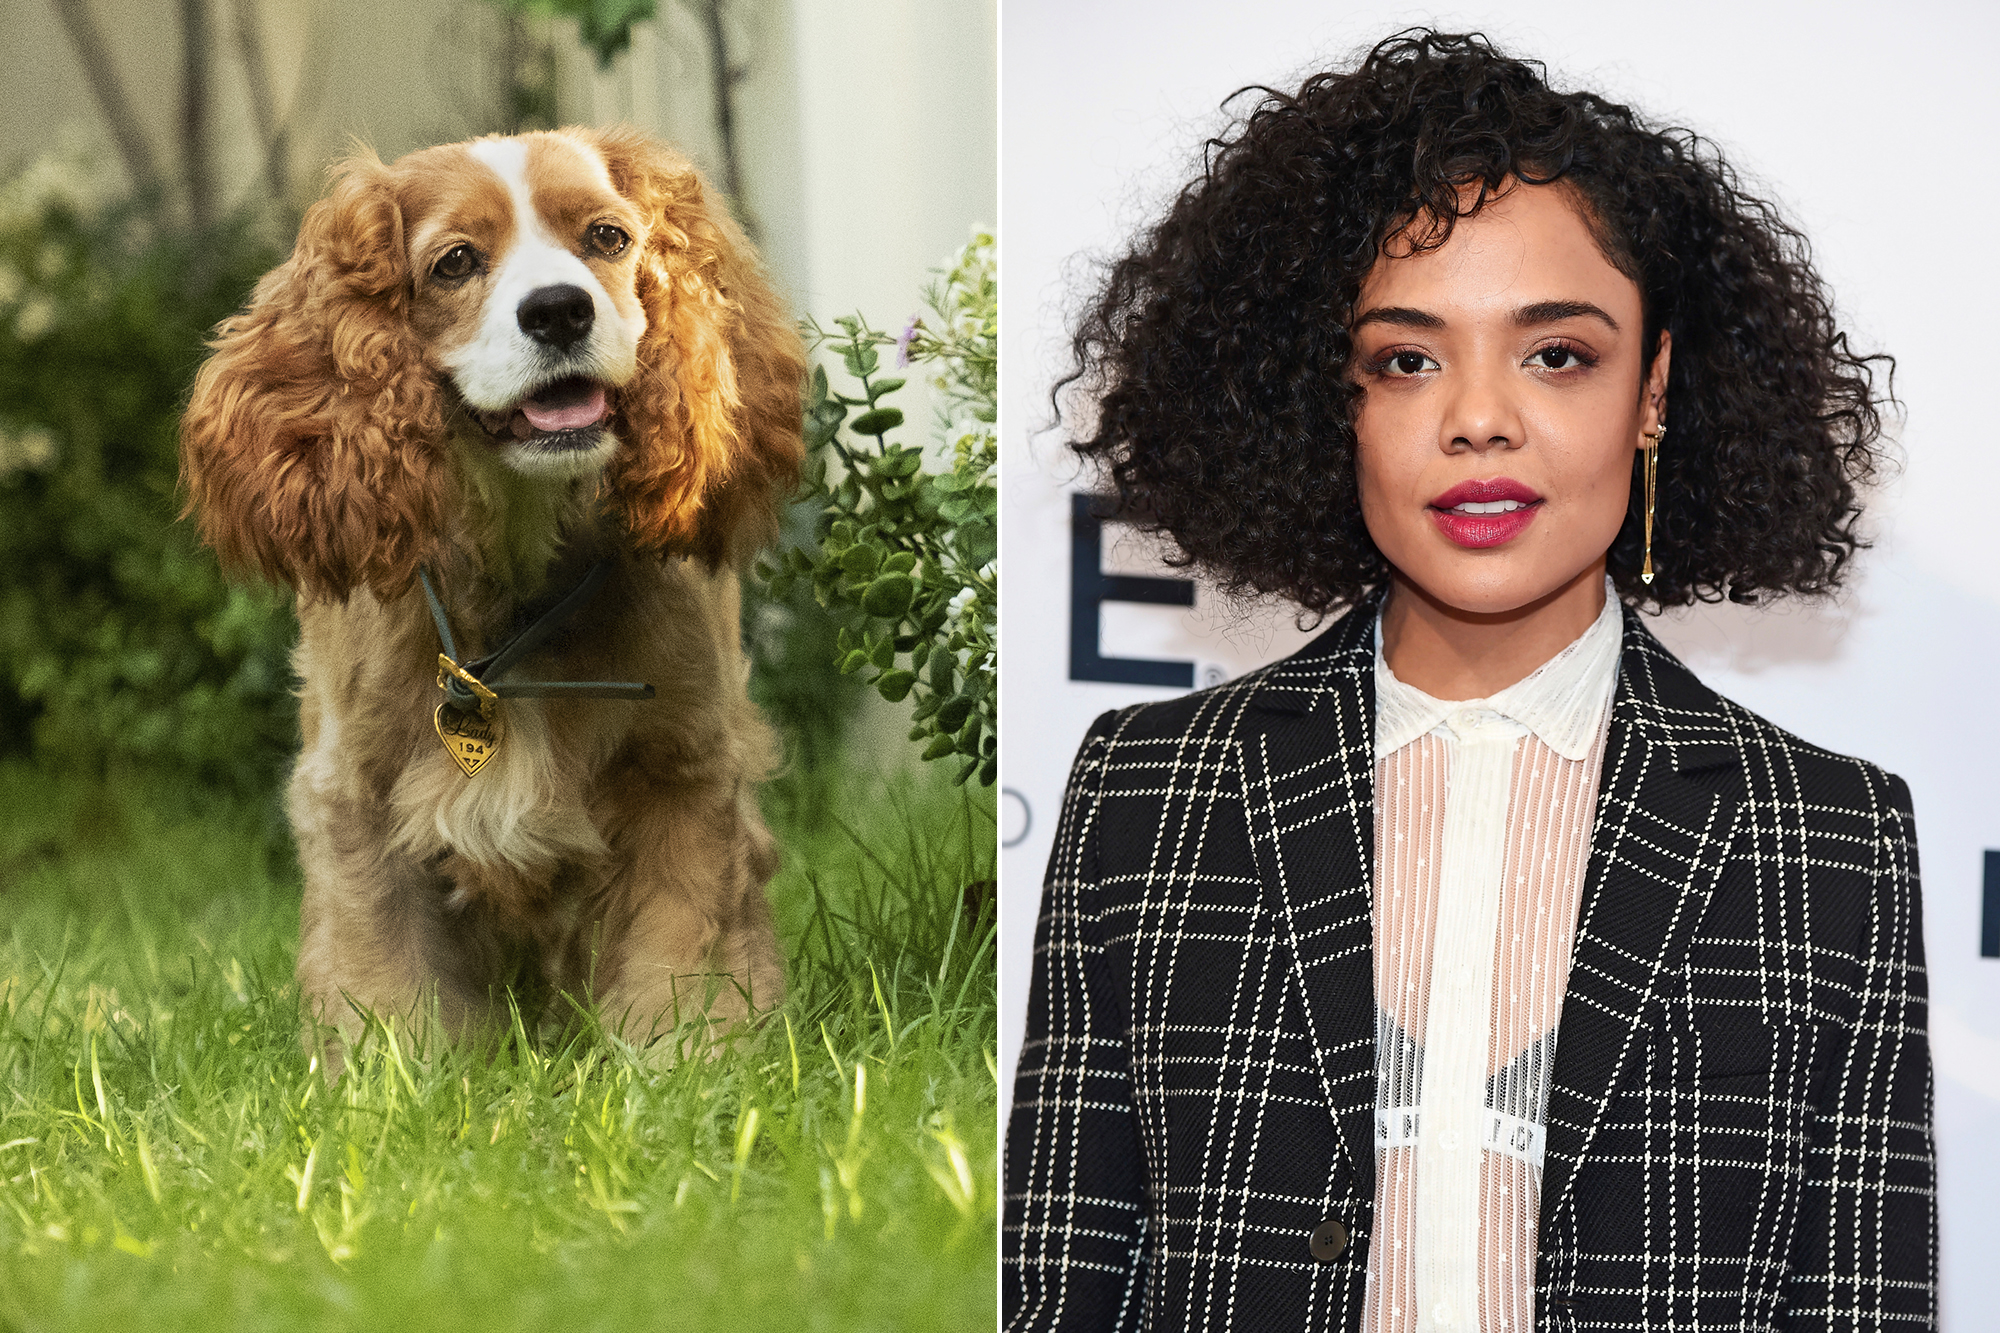 Rescue Dog To Become Disney Star In Lady And The Tramp Live Action Remake